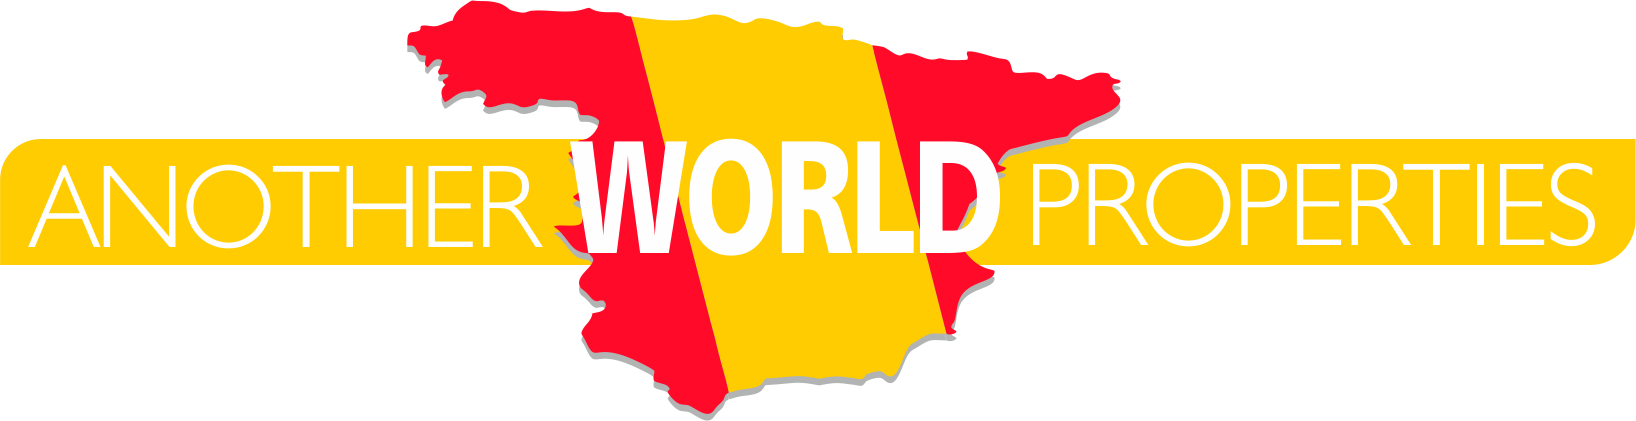 Anotherworld Properties ® - Spanish property